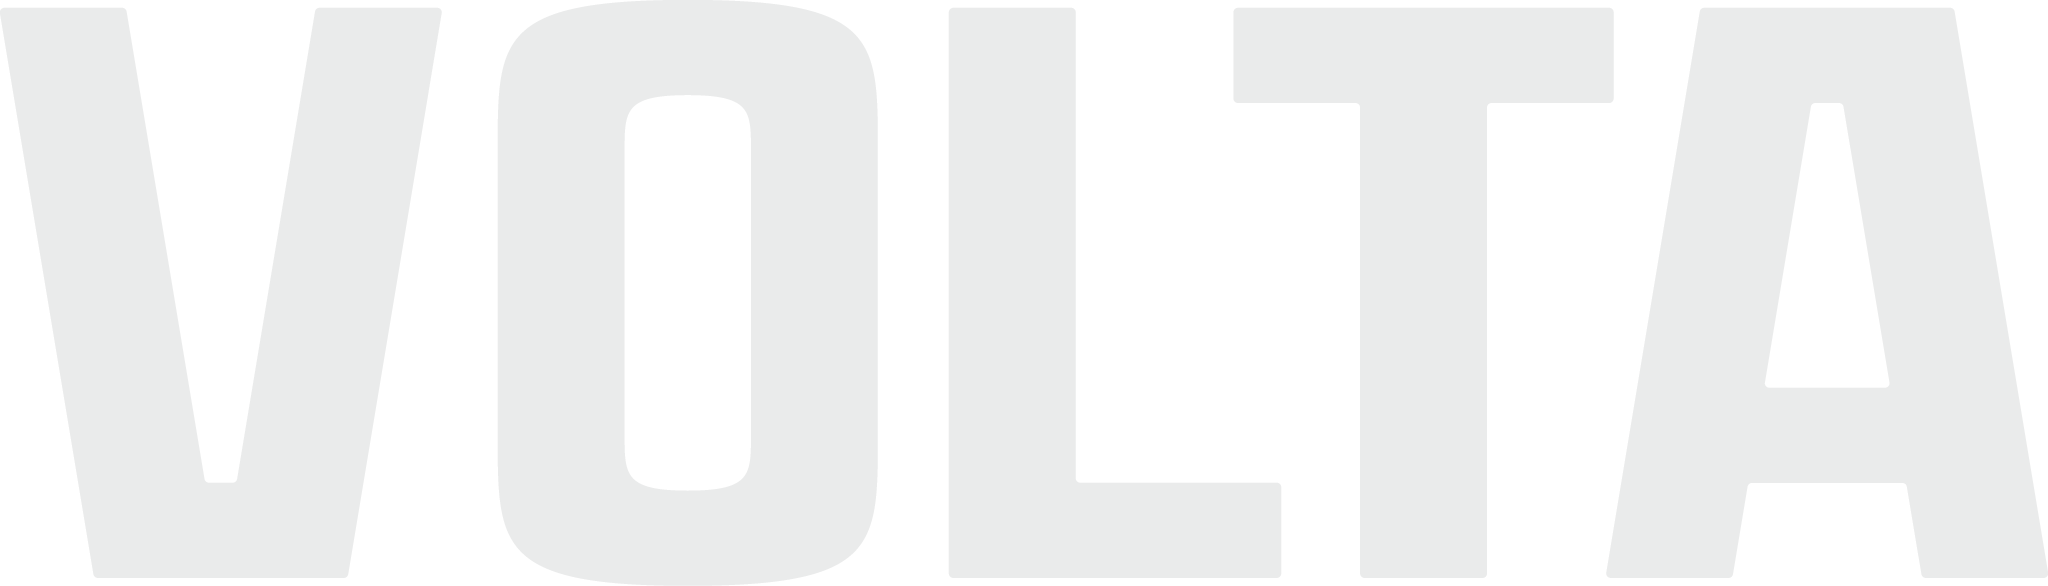 Volta Alternate Logo - Light